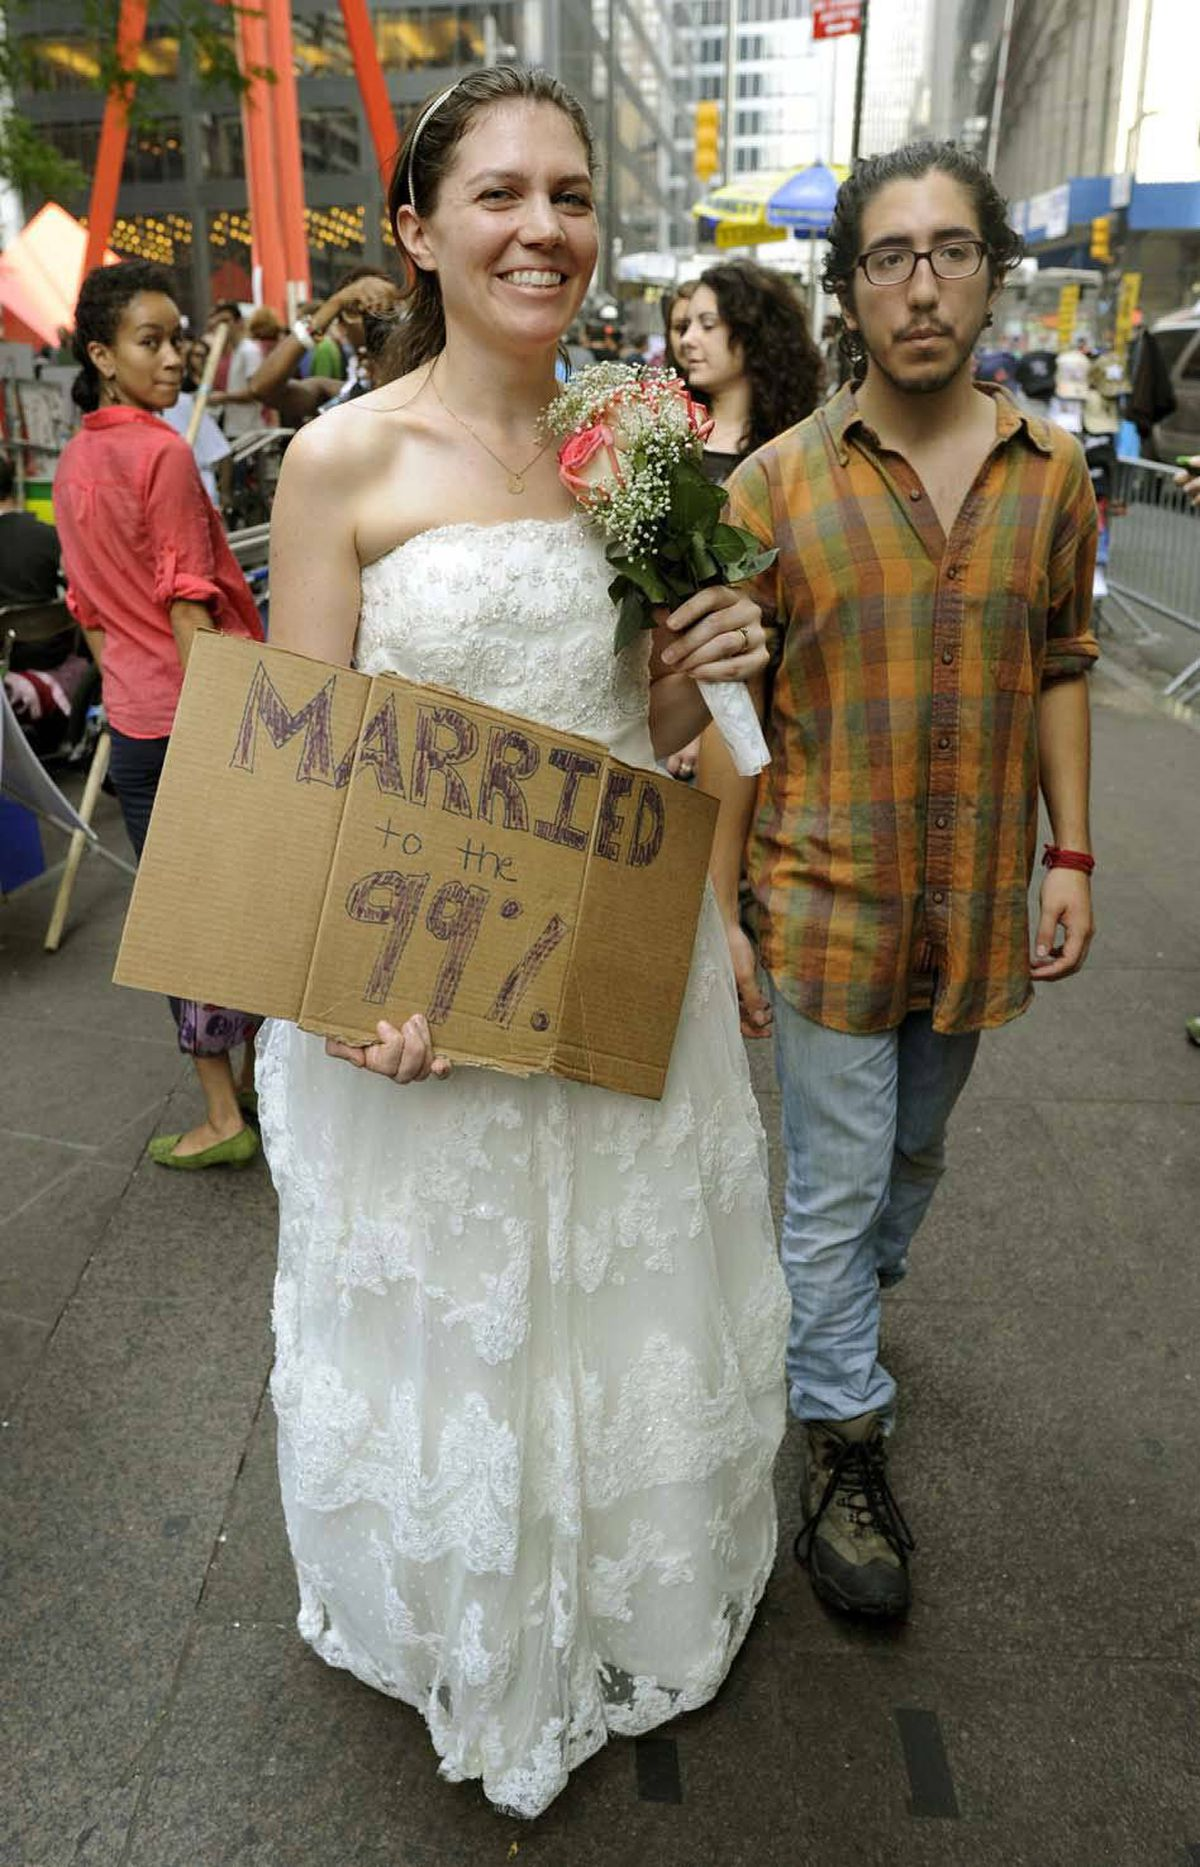 A couple of complete nobodies attend the Occupy Wall Street protest in New York on Monday.